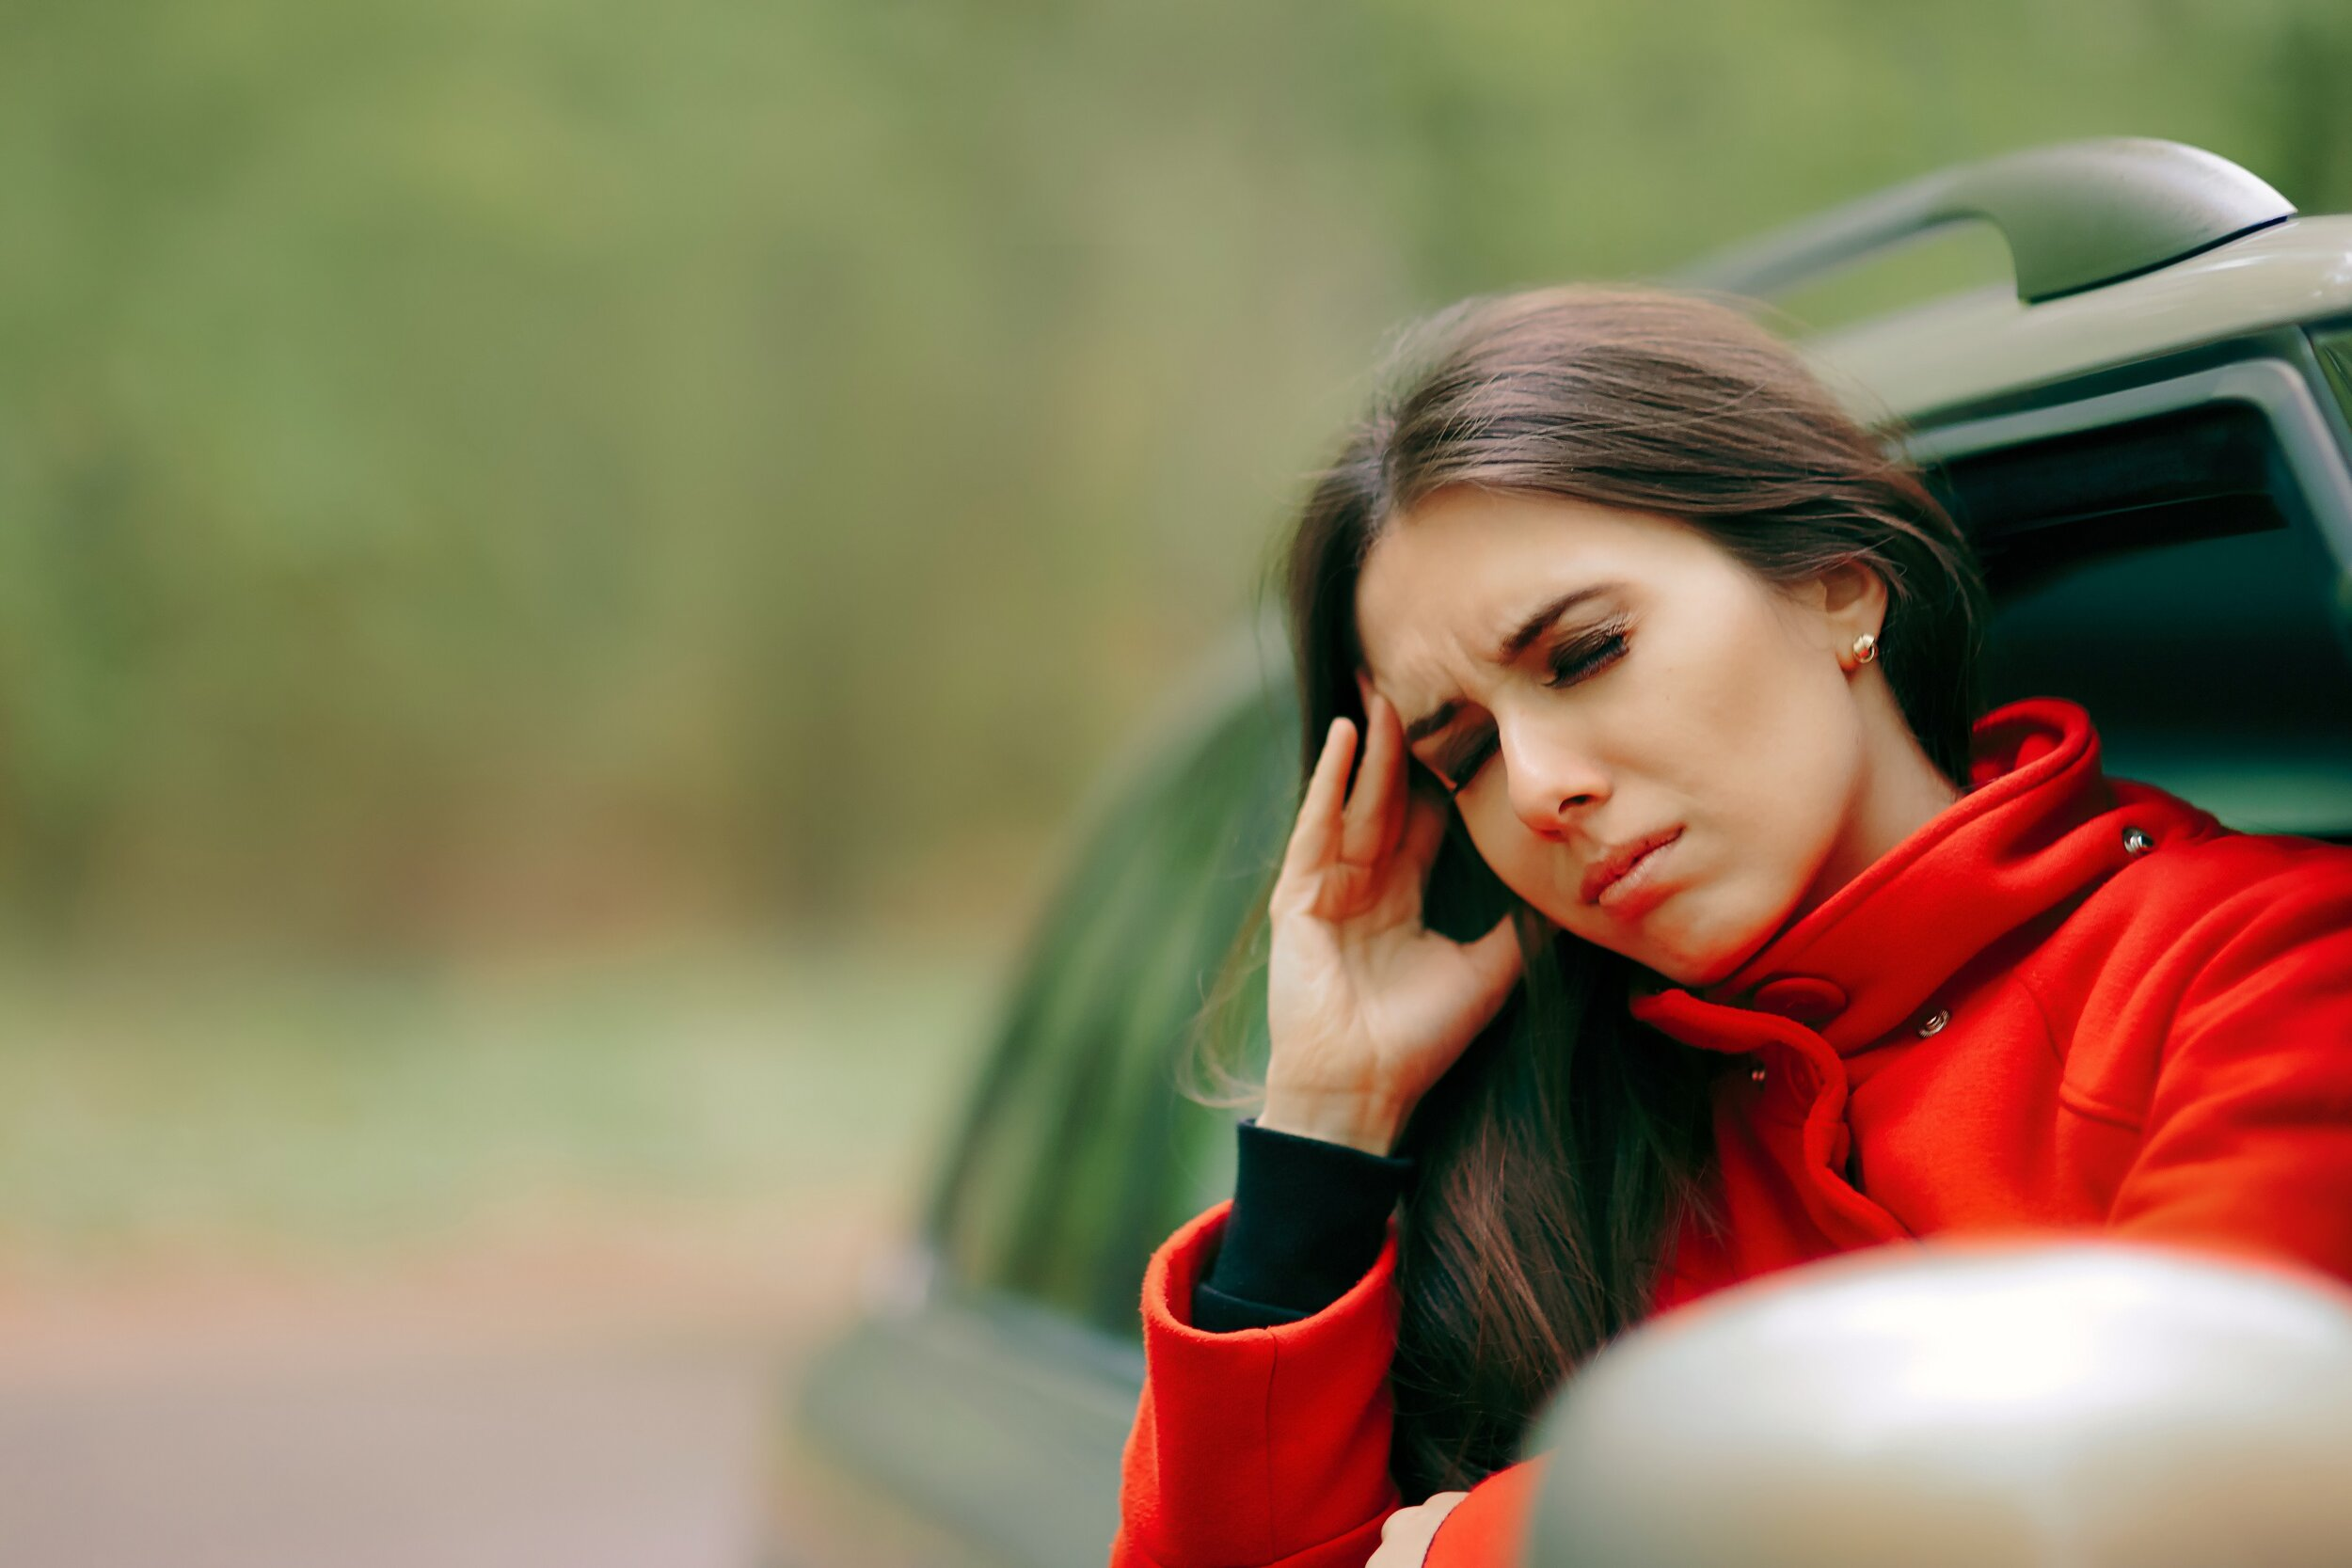 Being carsick can be a great nuisance - Image Credit: Nicoleta Ionescu via Shutterstock - HDR tune by Universal-Sci